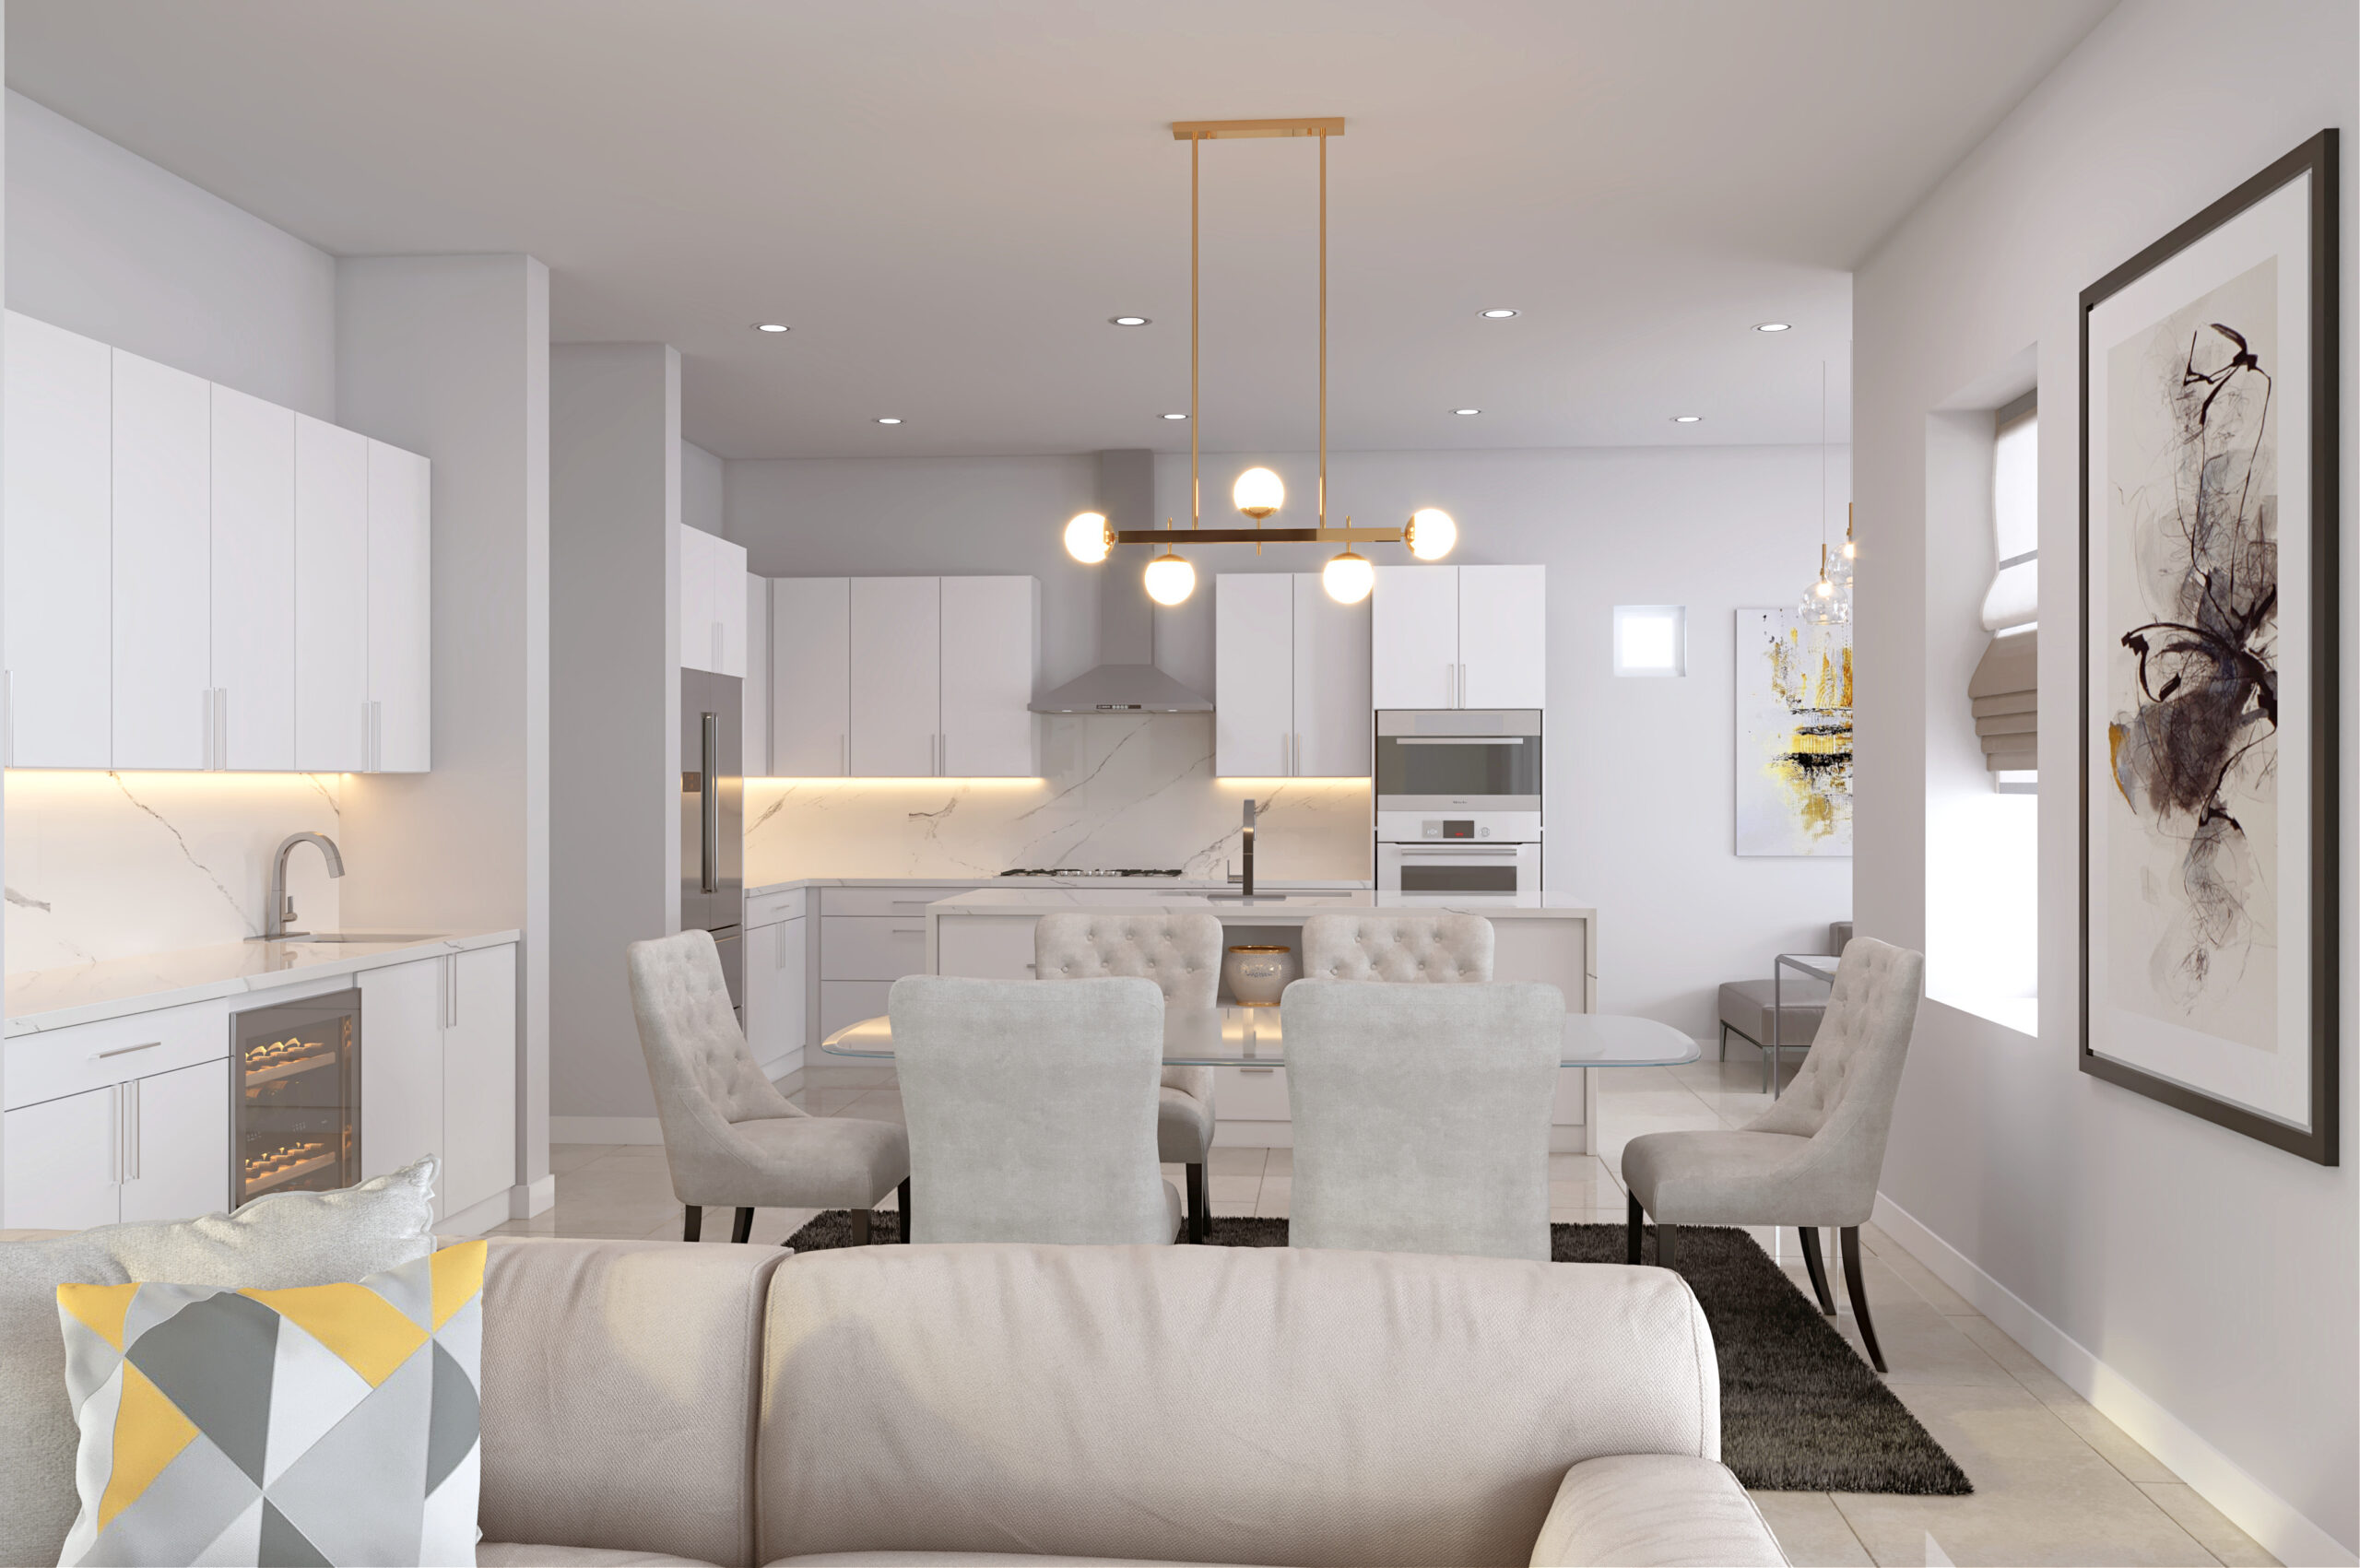 Plan 1: Dining and Kitchen White Cab